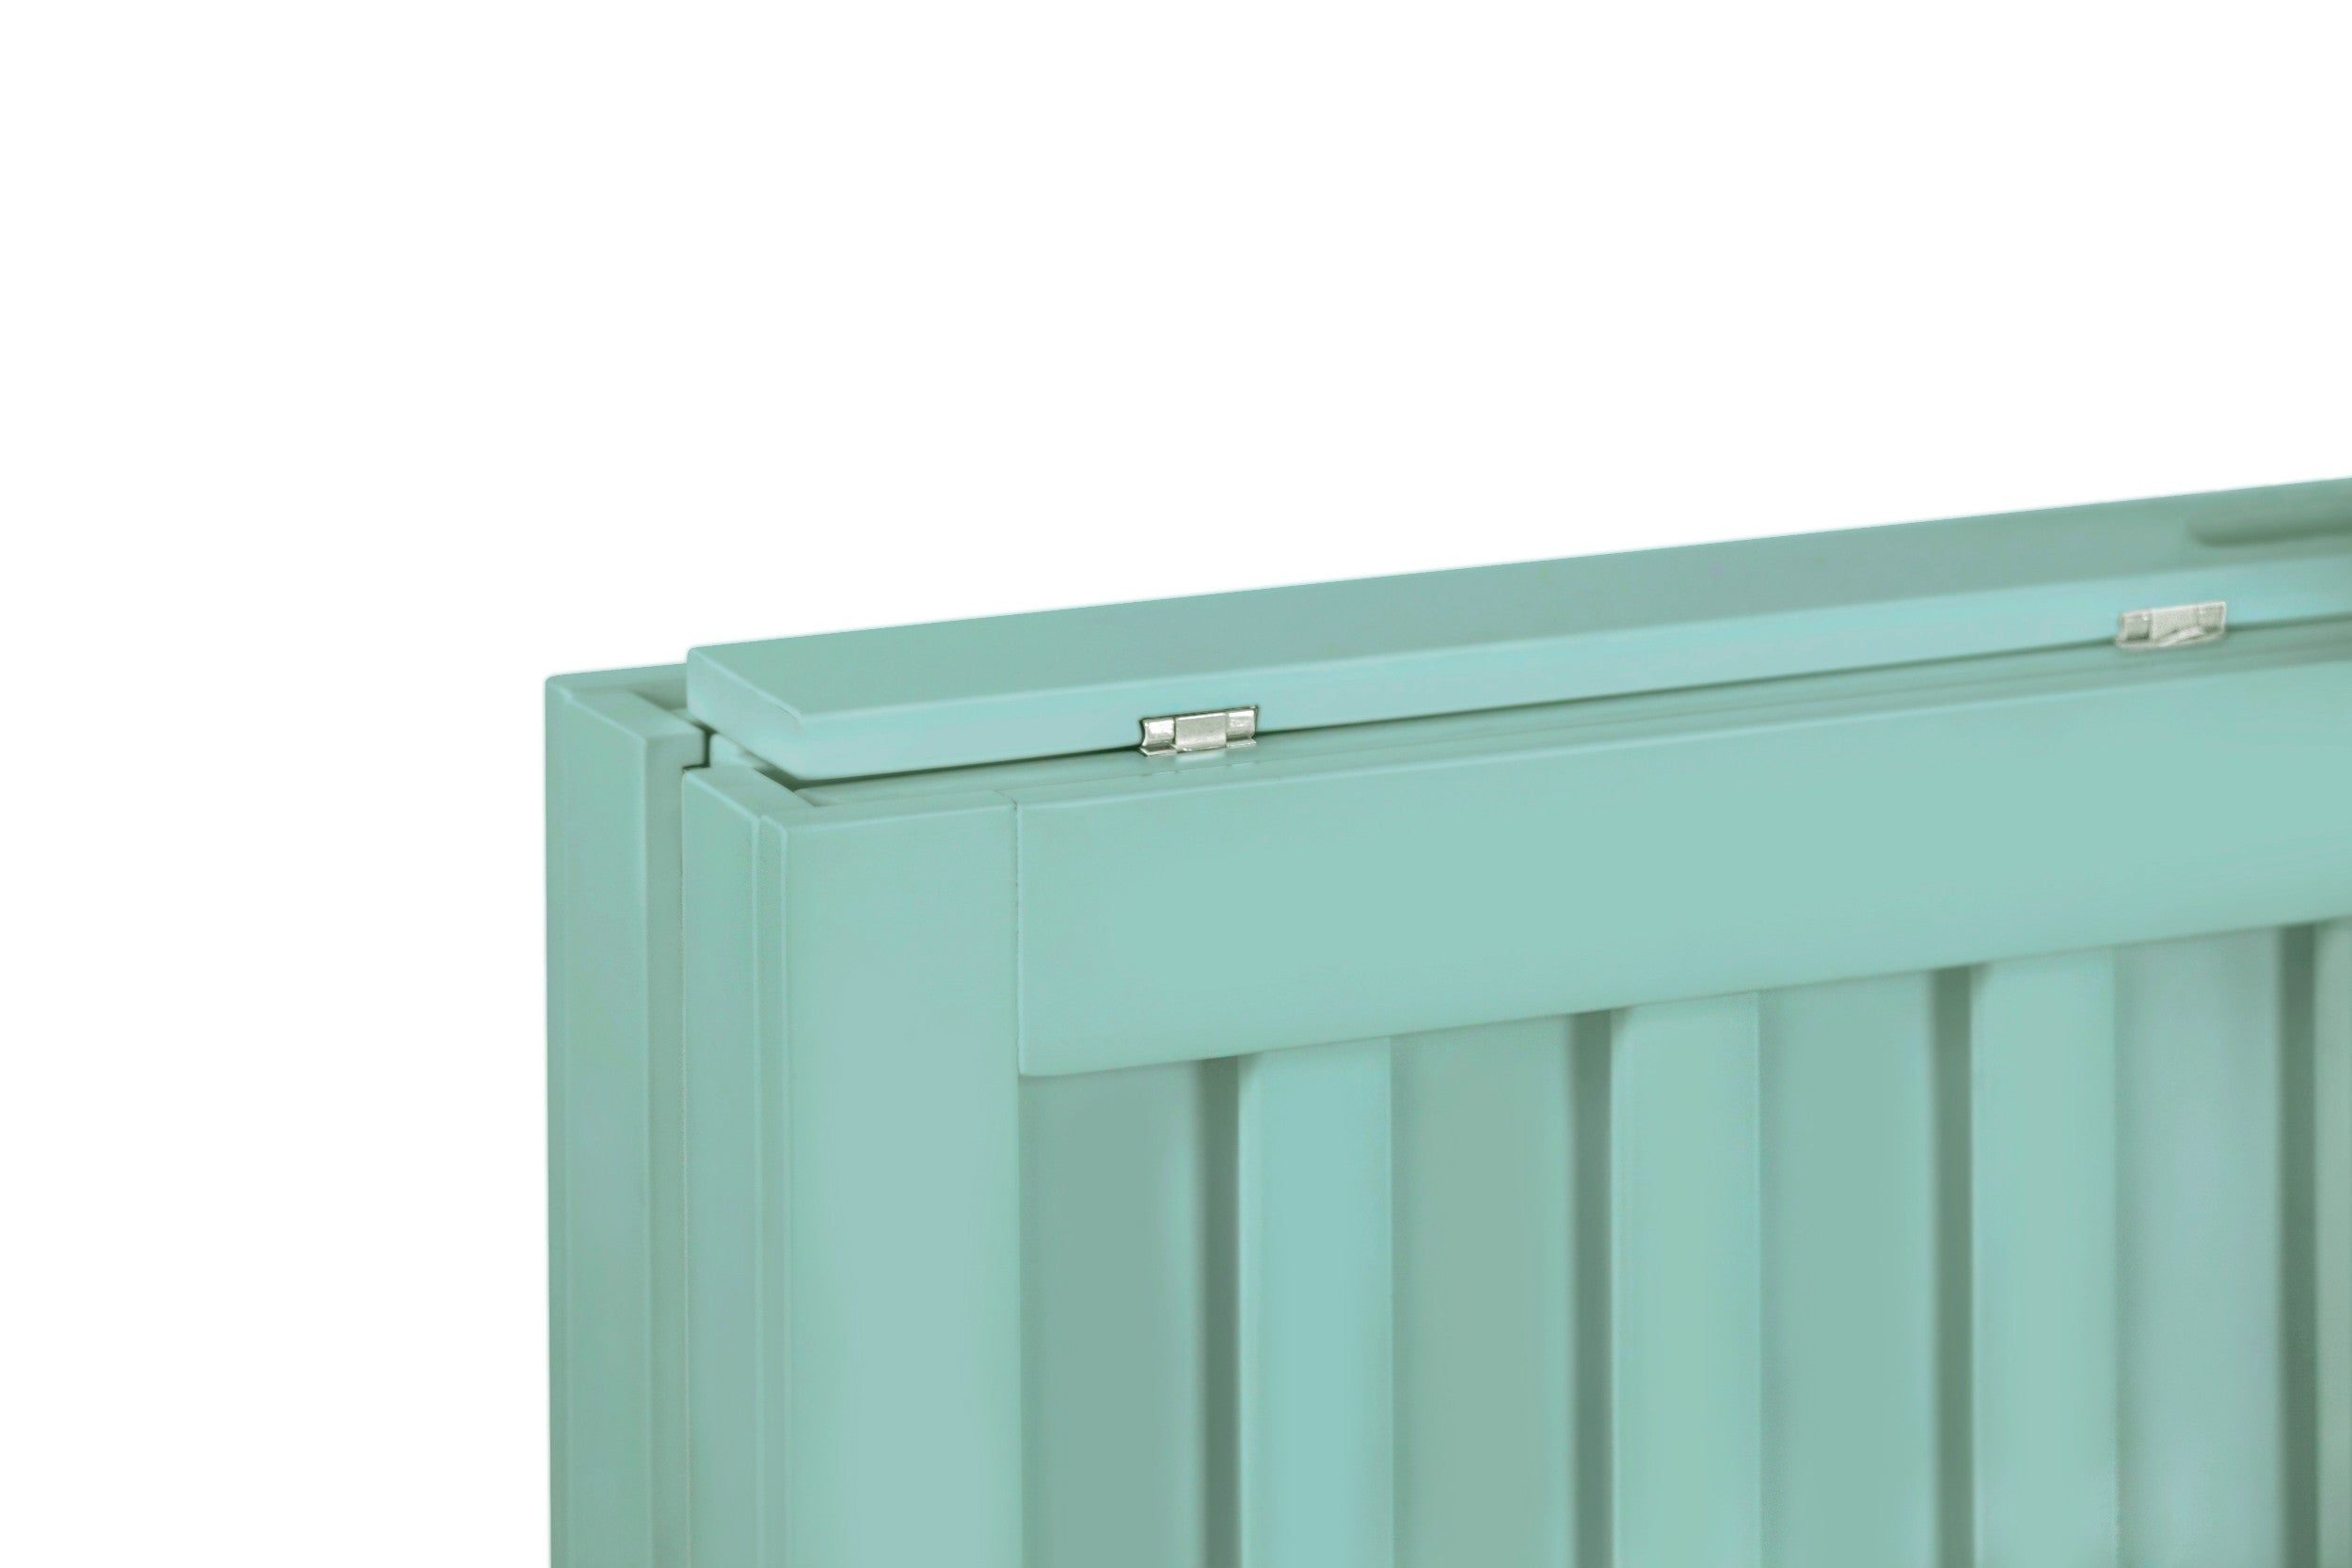 conversion crib upholstered toddler included master mattress teal kit dimensions round mini origami space wood miniature bloom cribs glorious small contemporary bedroom furniture